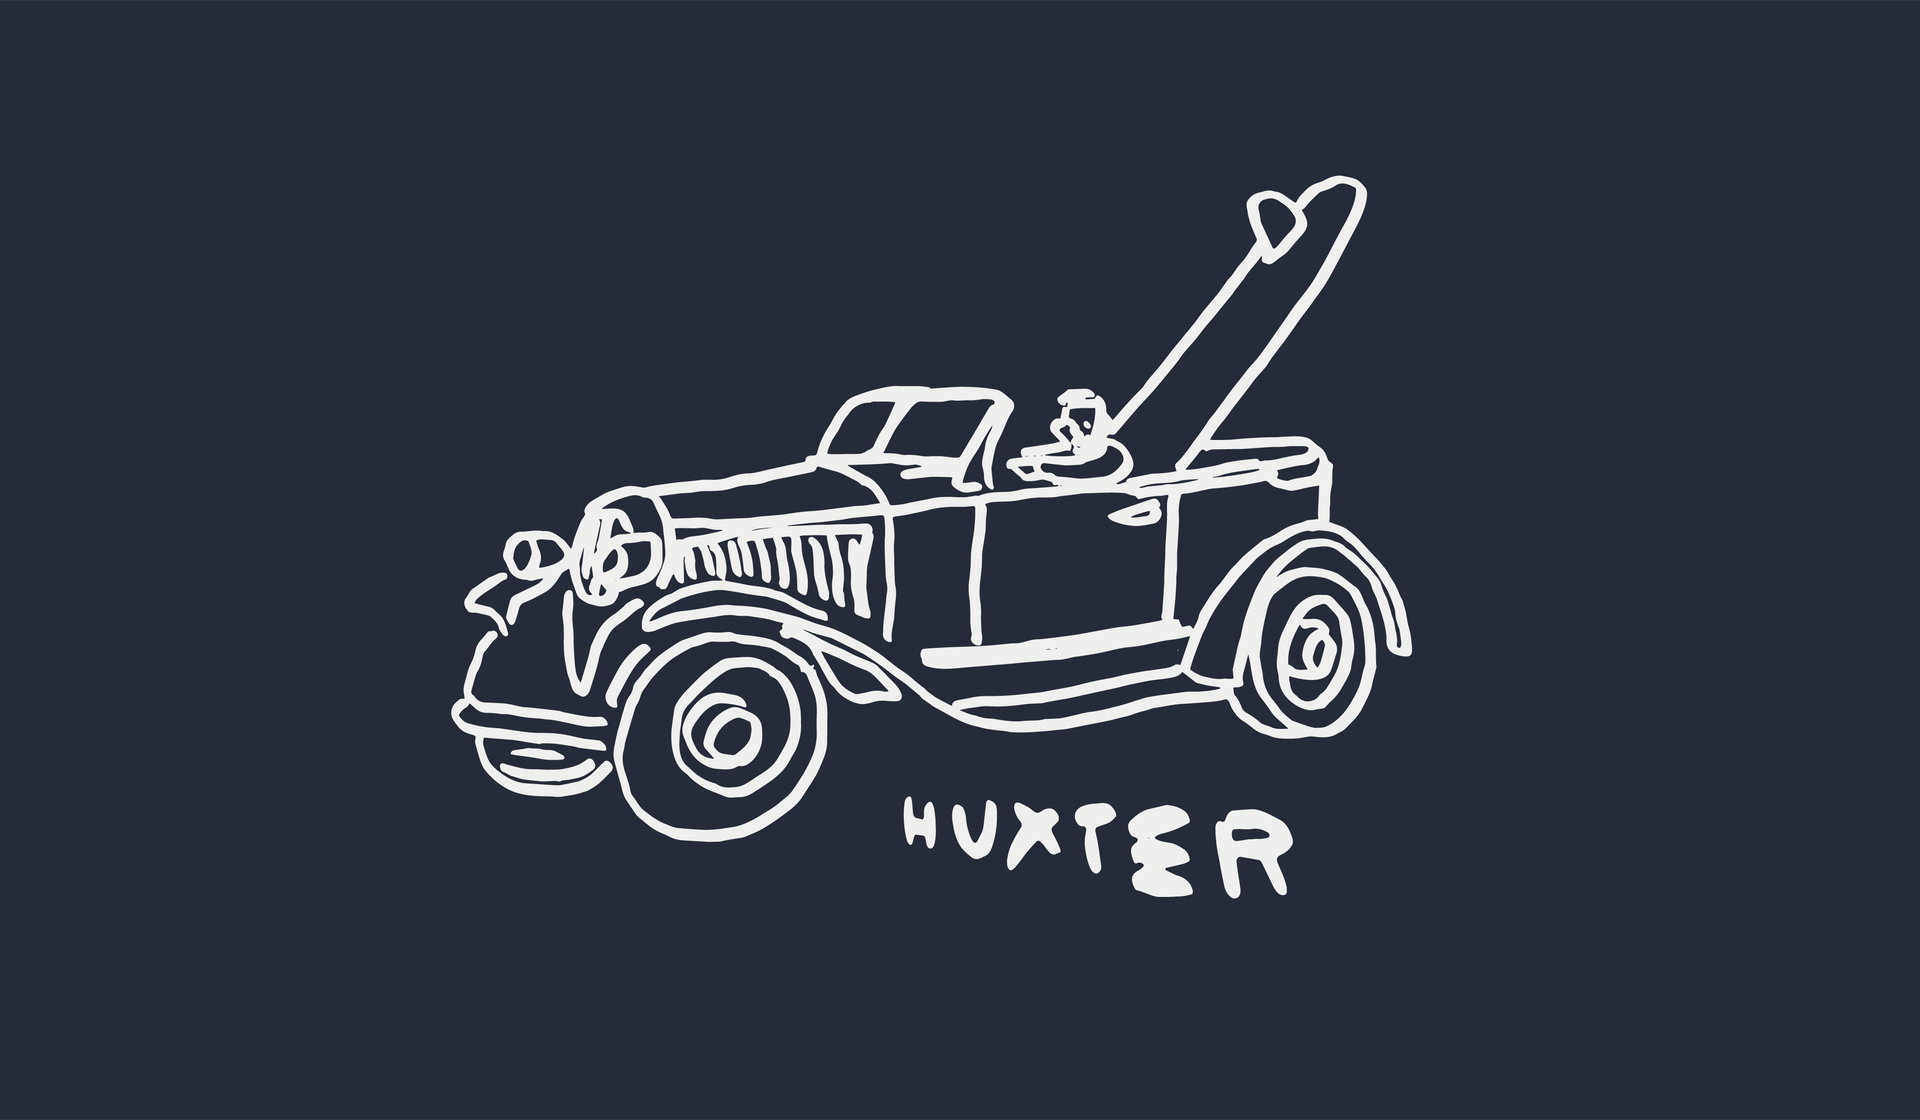 Huxter T-Shirt Design2.0.png